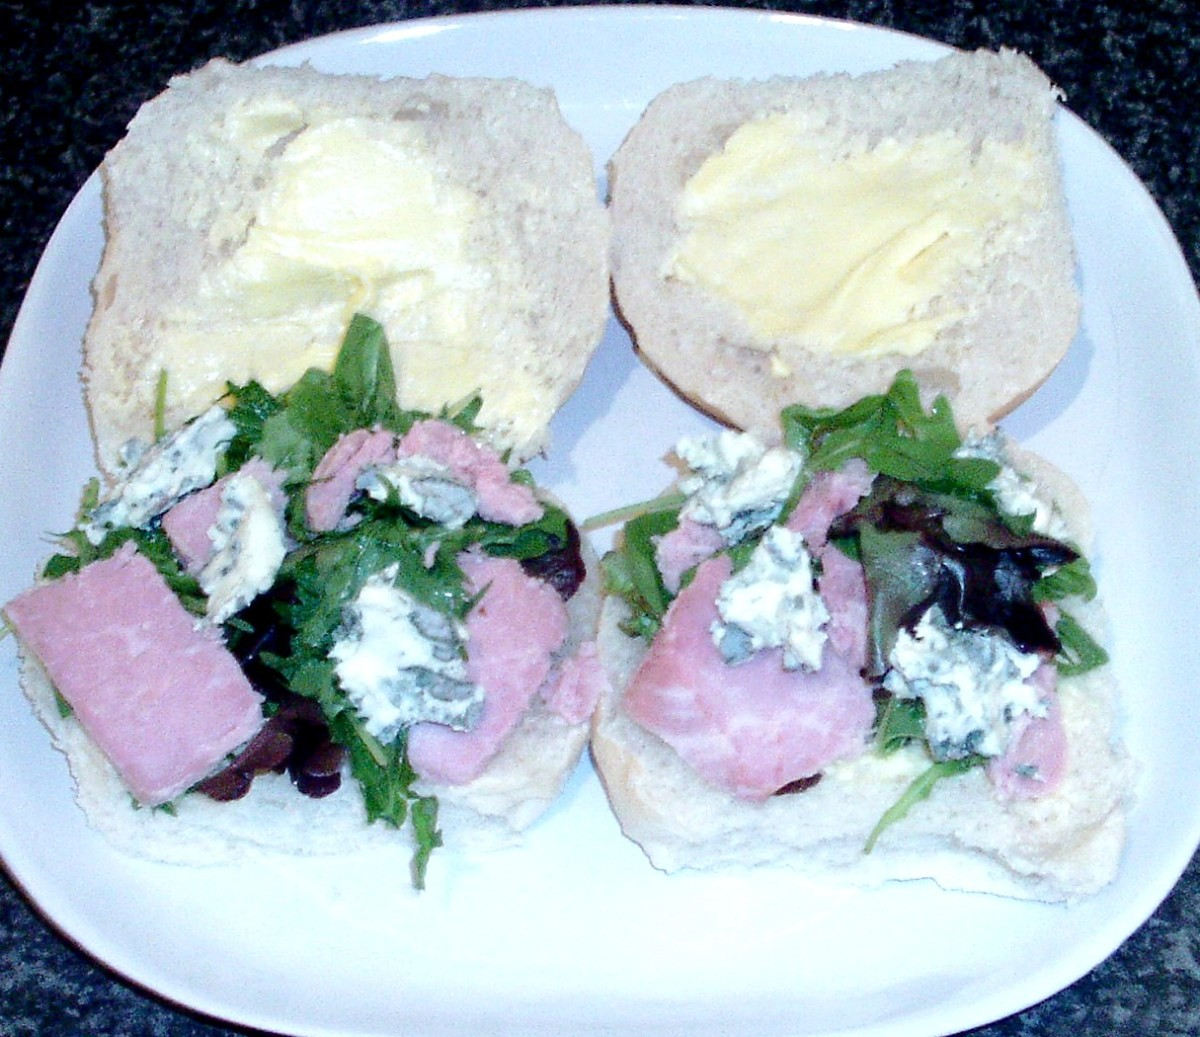 Ham, blue cheese and mixed leaf salad on rolls